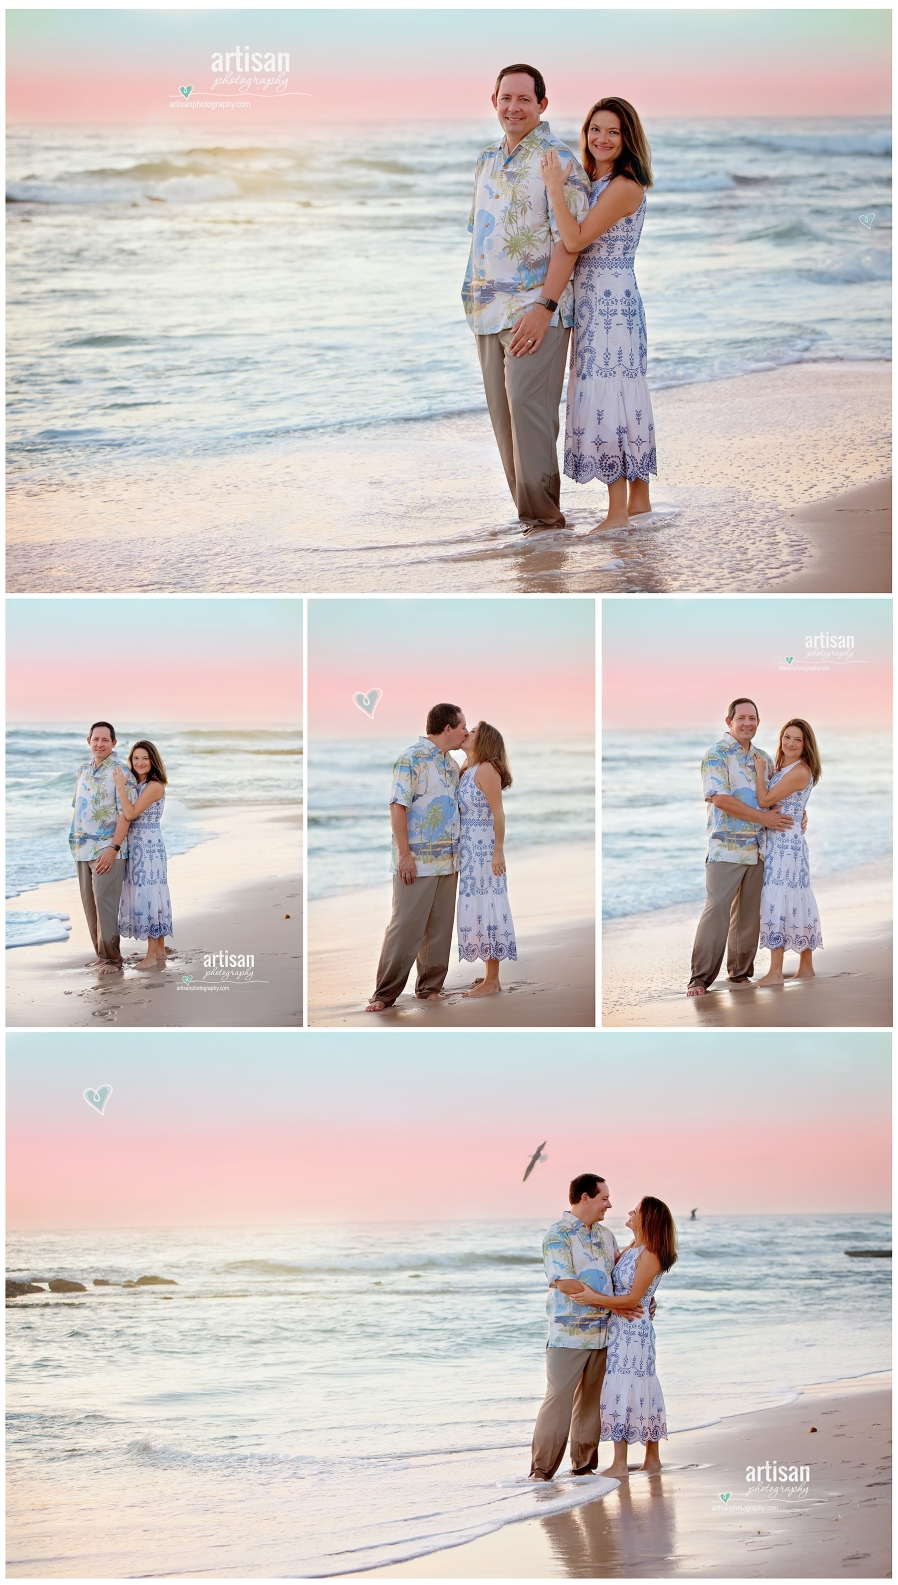 Beautiful couple photoshoot on the beach with sunset in the background, San Diego, La Jolla California beach. Beach family photographer